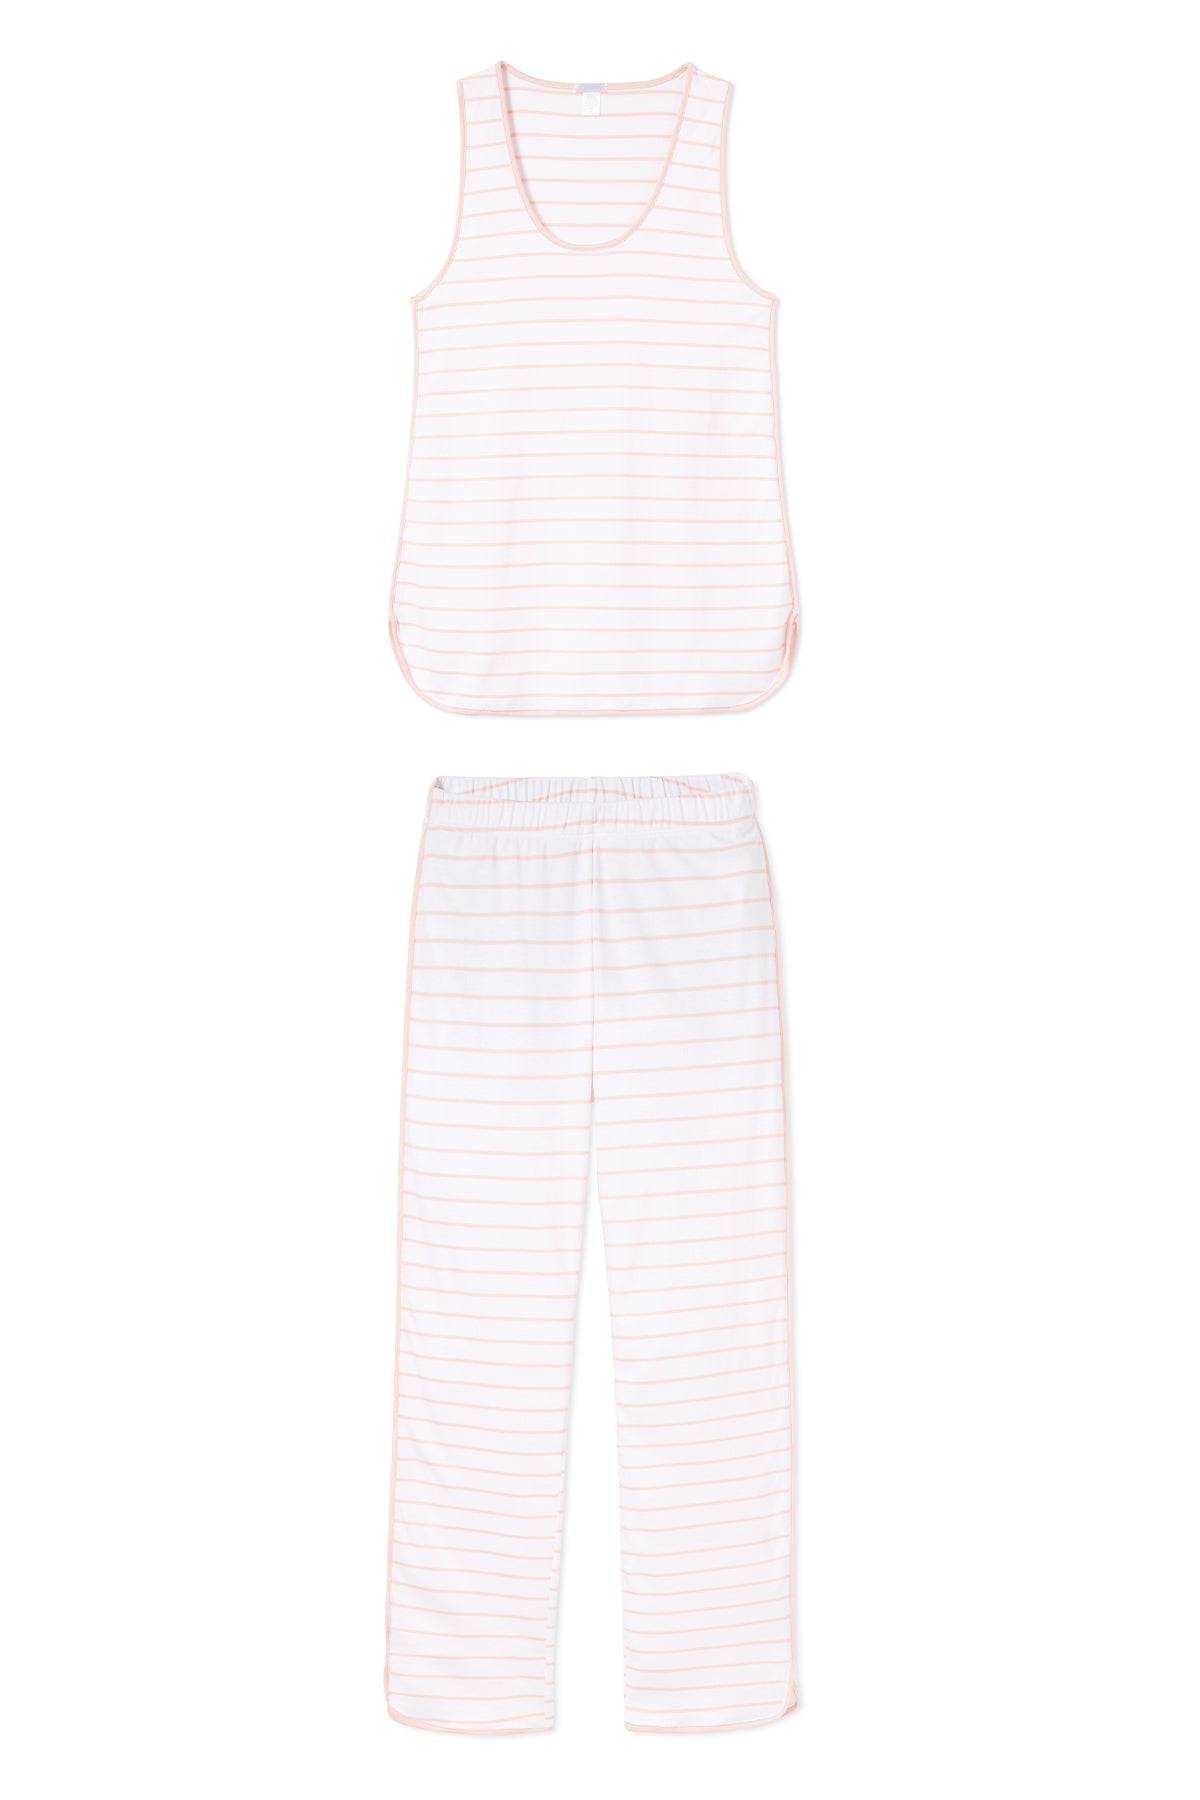 Pima Tank-Long Set in Peach